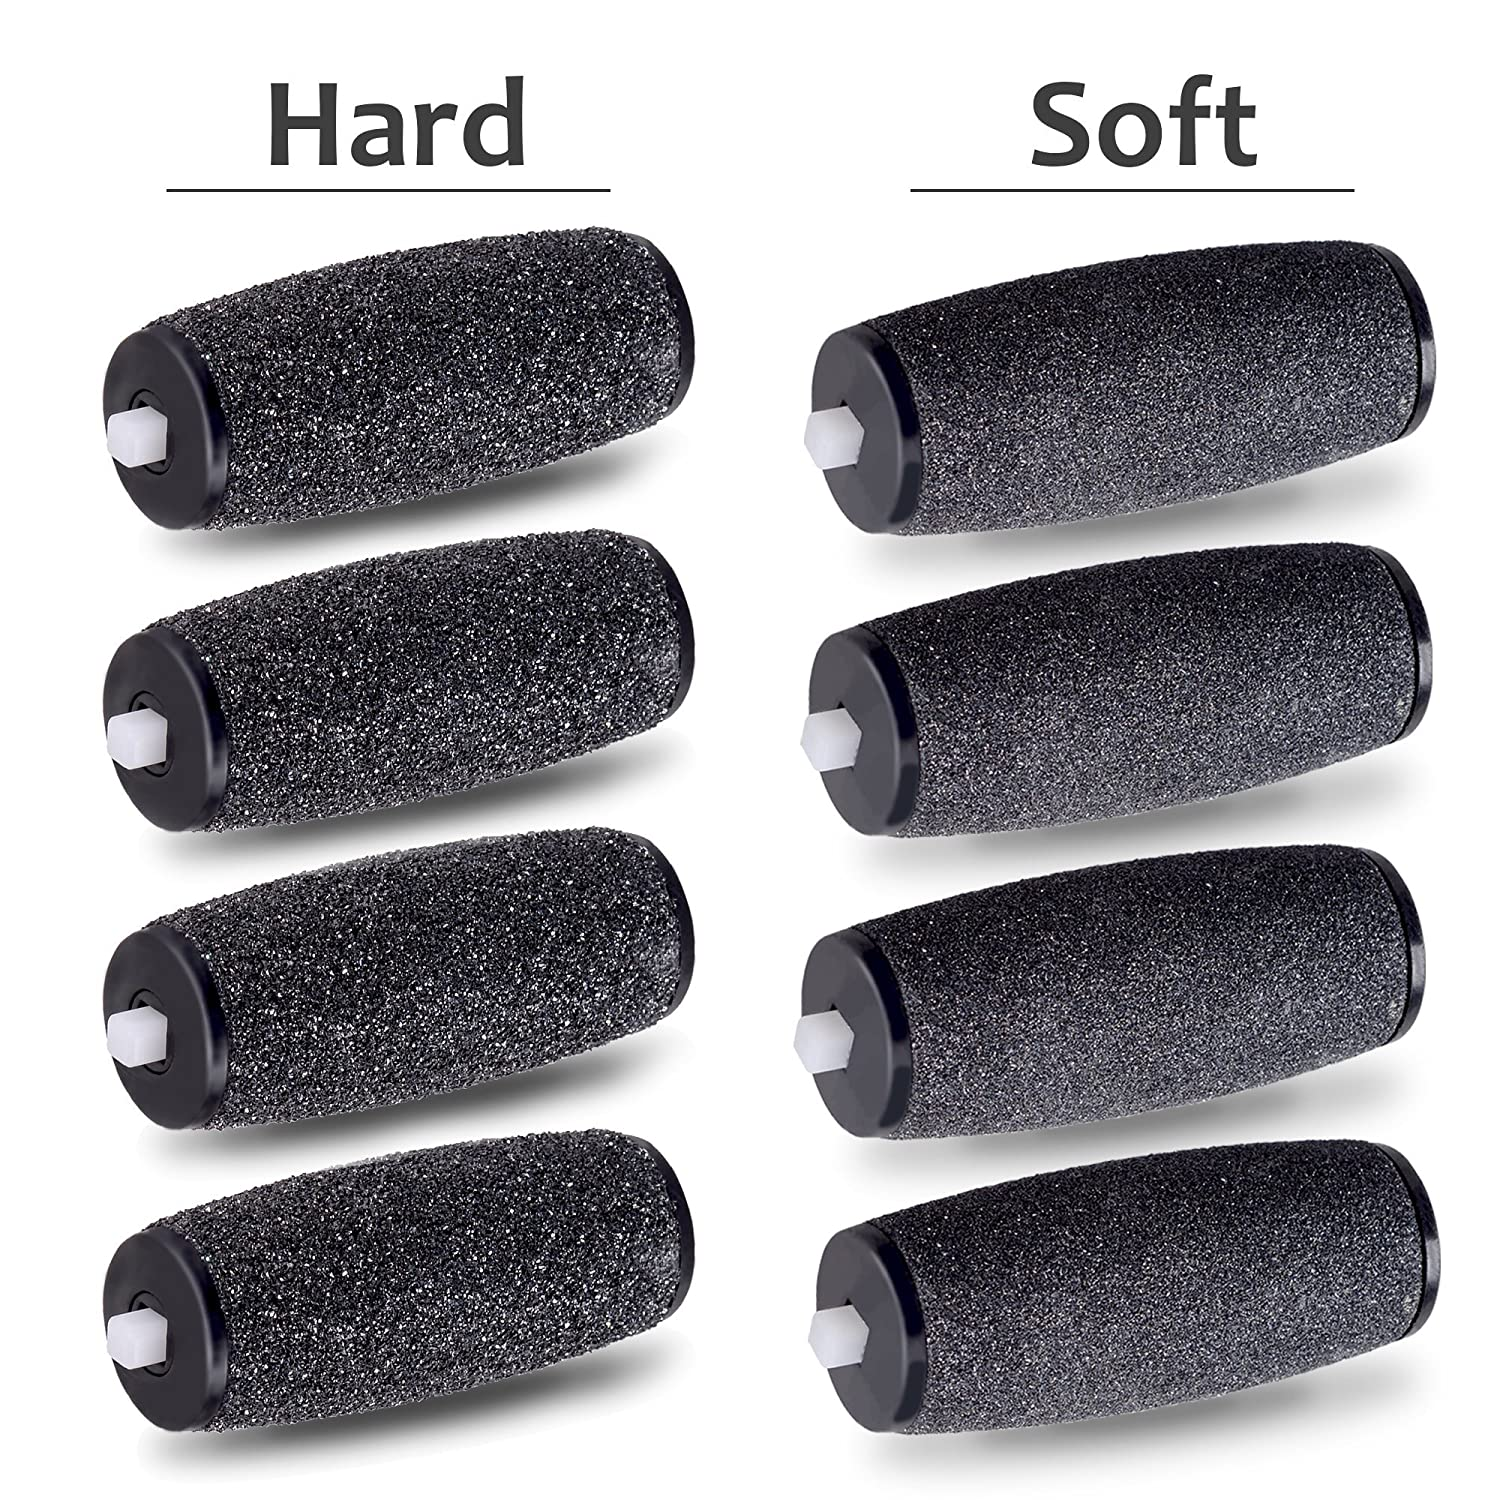 E-Cron® Replacement Rollers for Pedi Perfect/Velvet Smooth - Mix (Hard & Extra Hard) 8pcs CLR-SCH-MIX